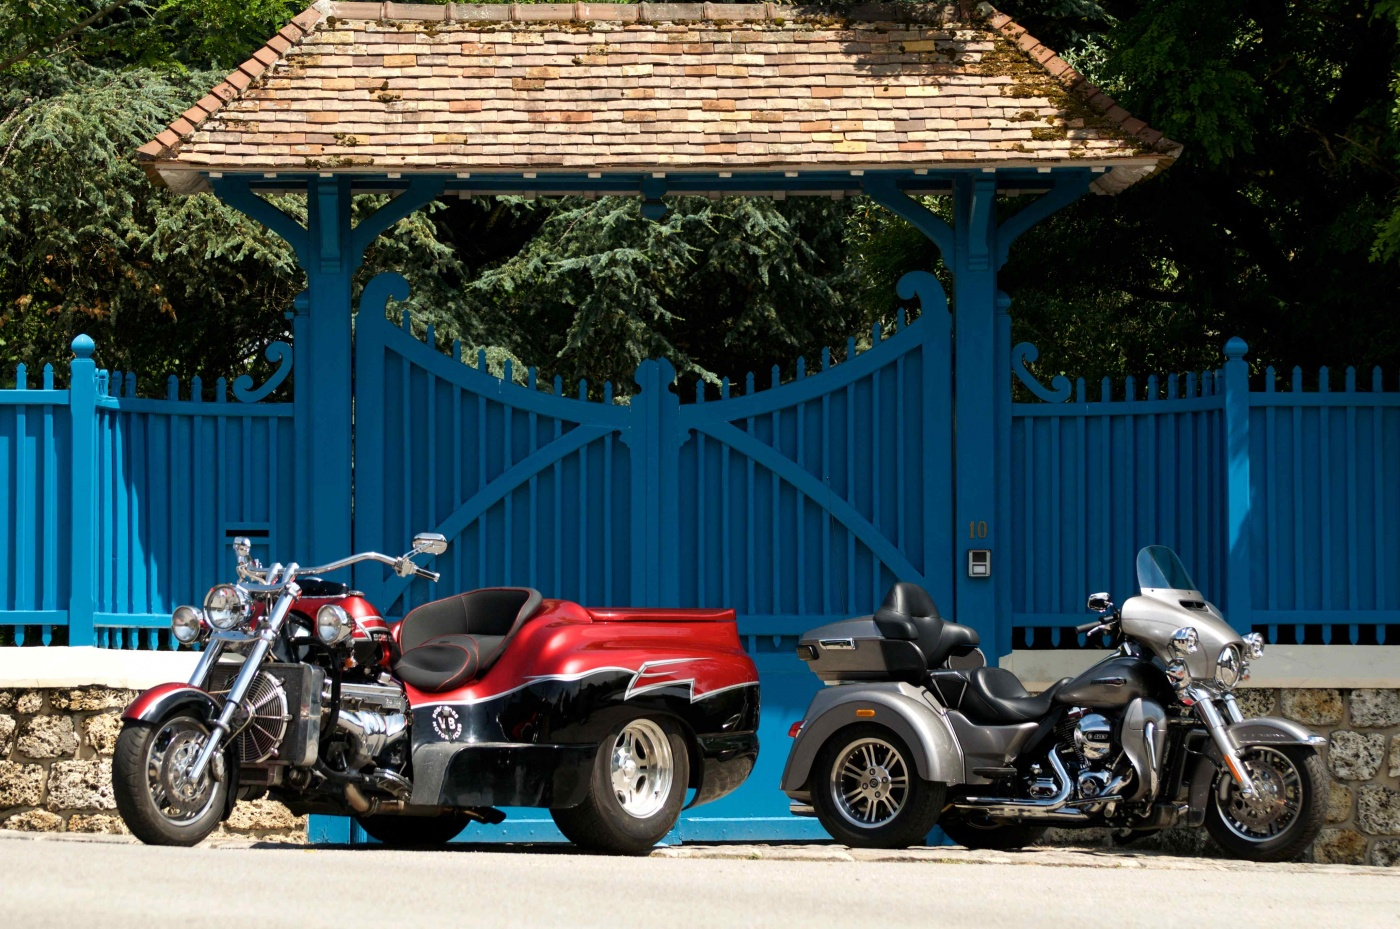 comparatif boss hoss trike v8 vs harley davidson tri glide ultra us spirit blog automobile. Black Bedroom Furniture Sets. Home Design Ideas